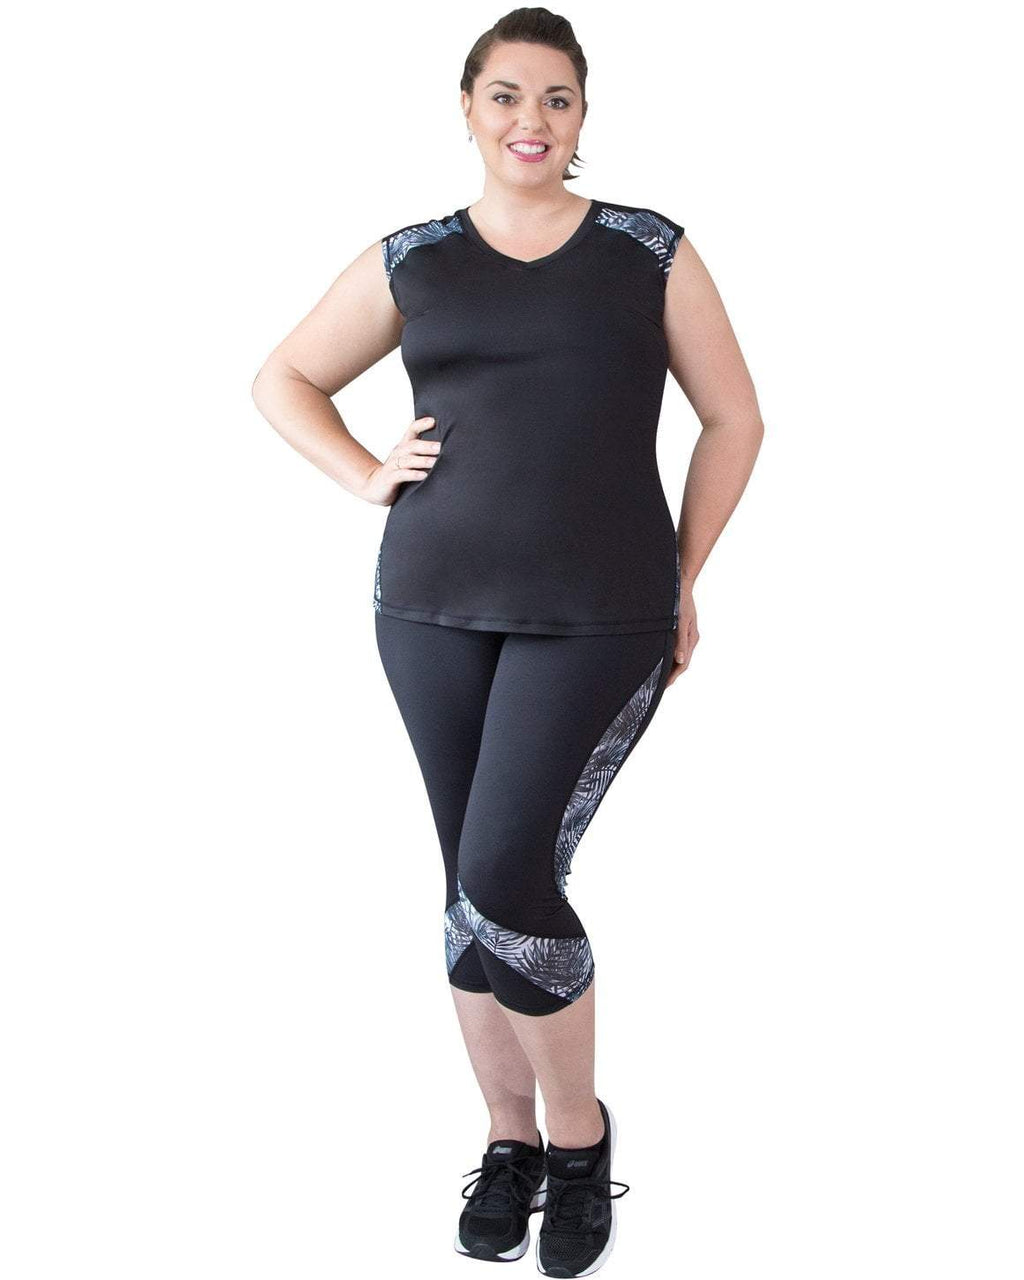 Verve Sleeveless Sports Top - Be Activewear